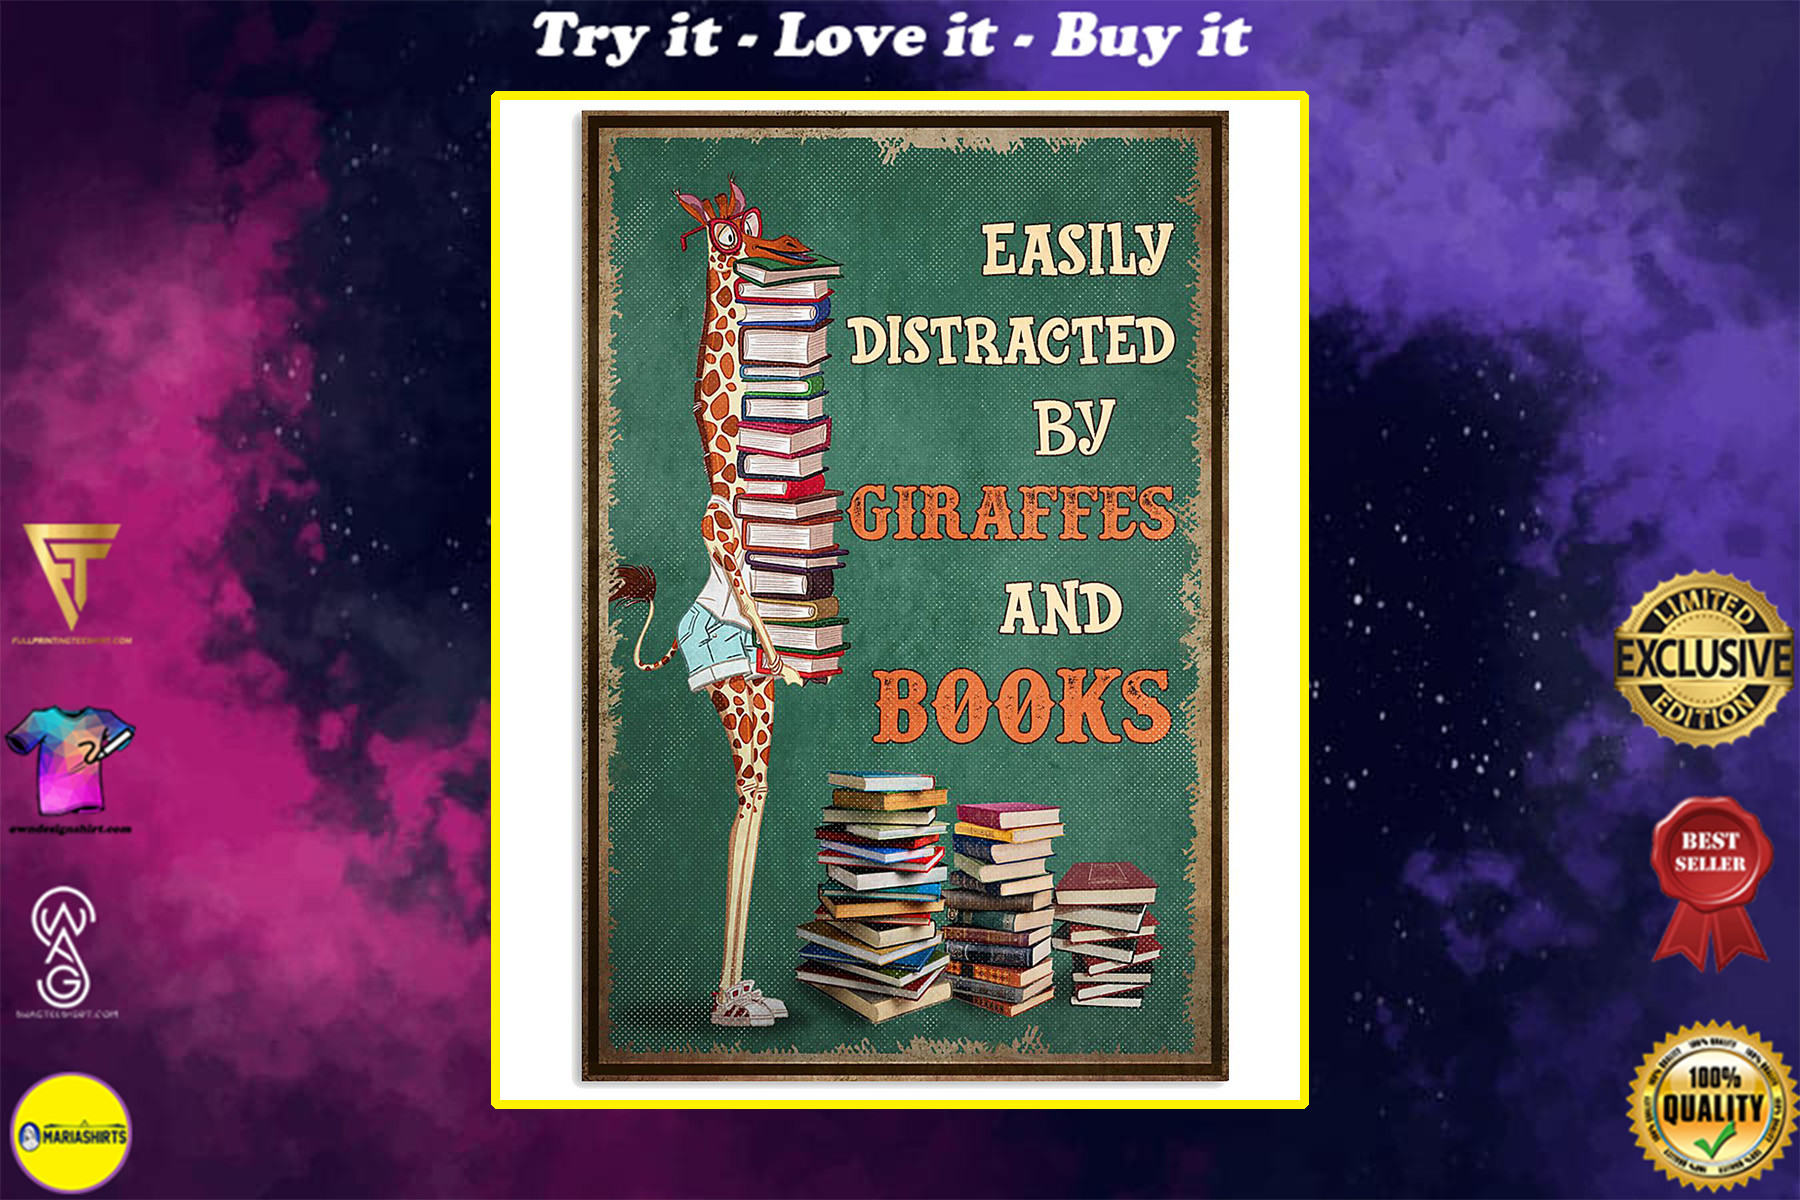 easily distracted by giraffes and book poster